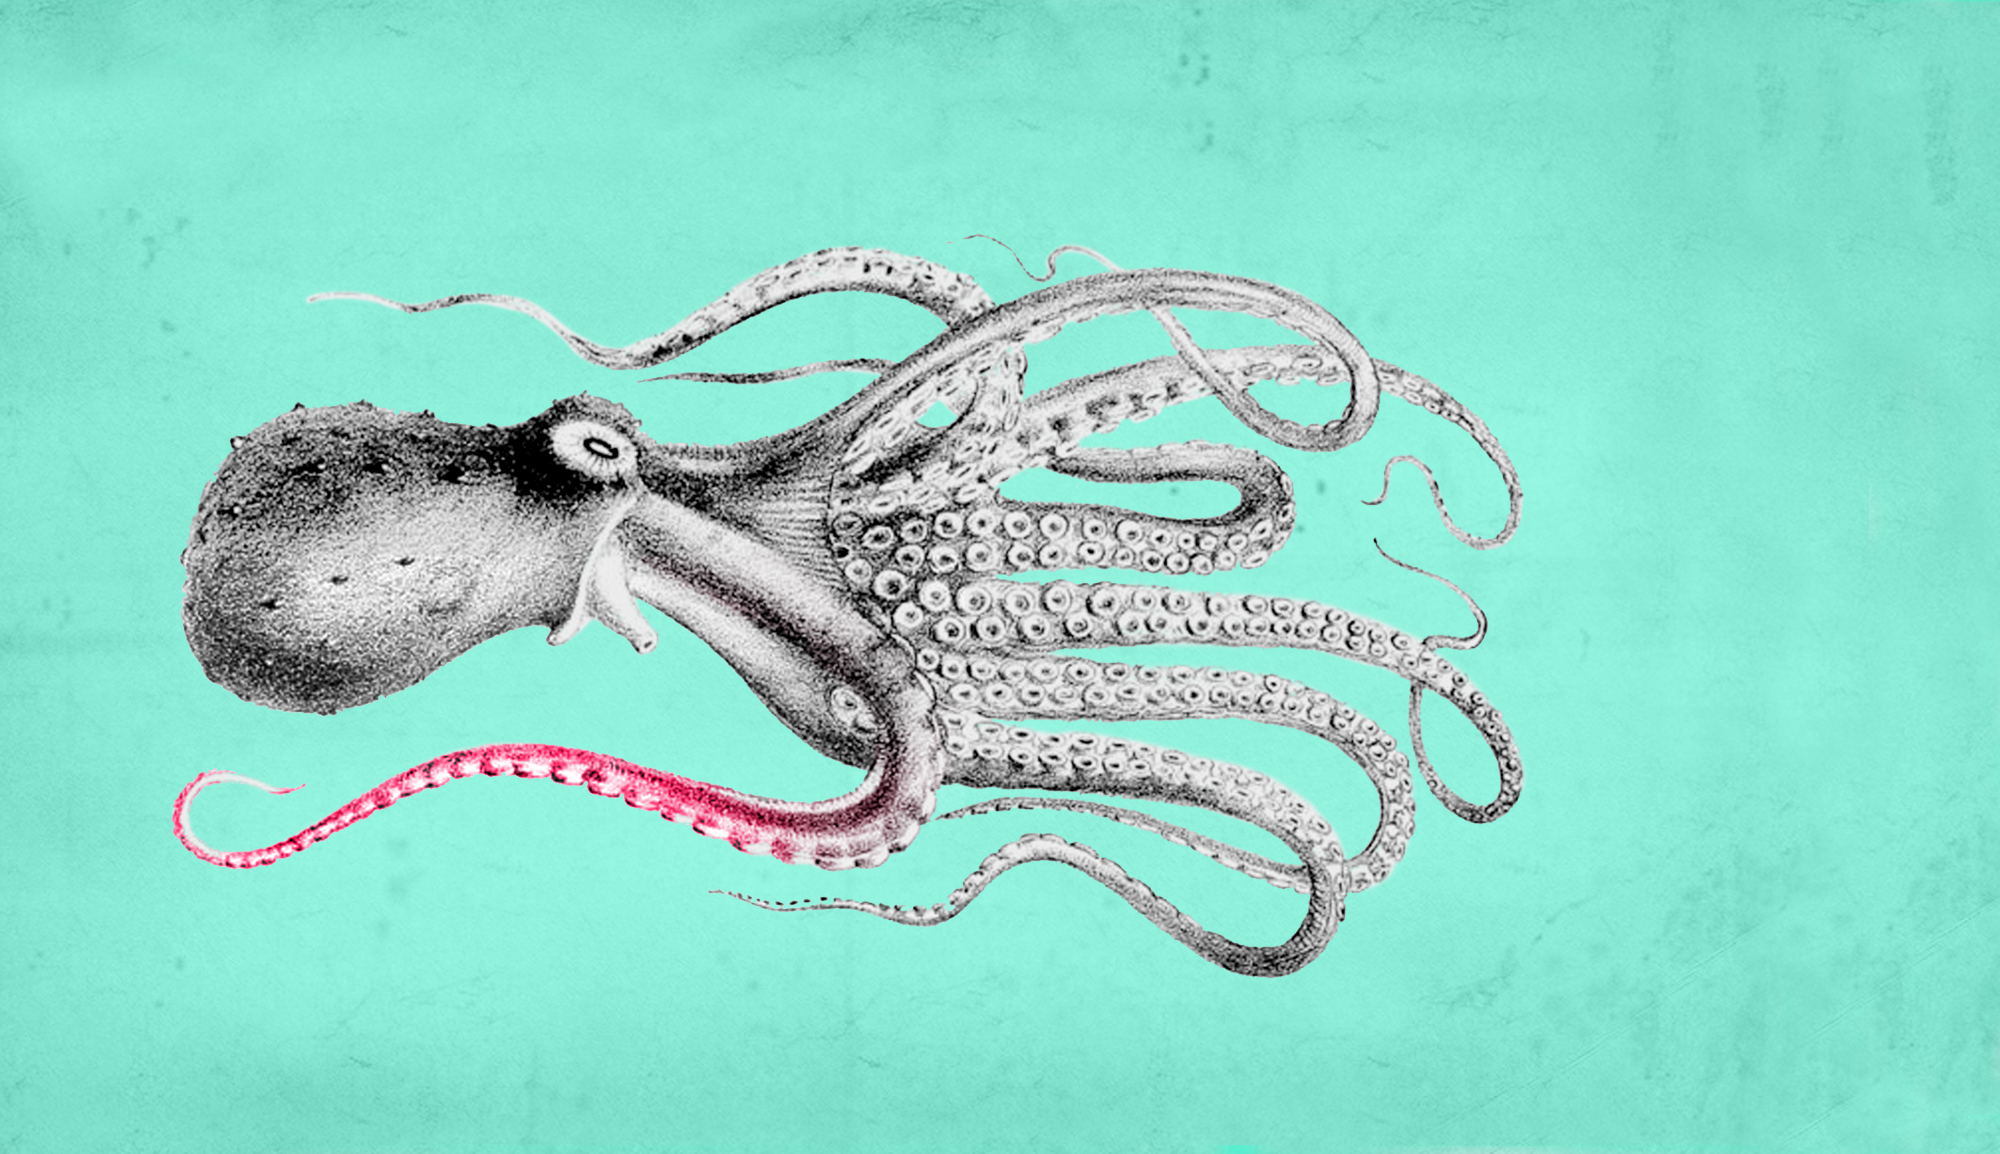 One Tentacle Publishing - Children's Books, Art Books and Prints